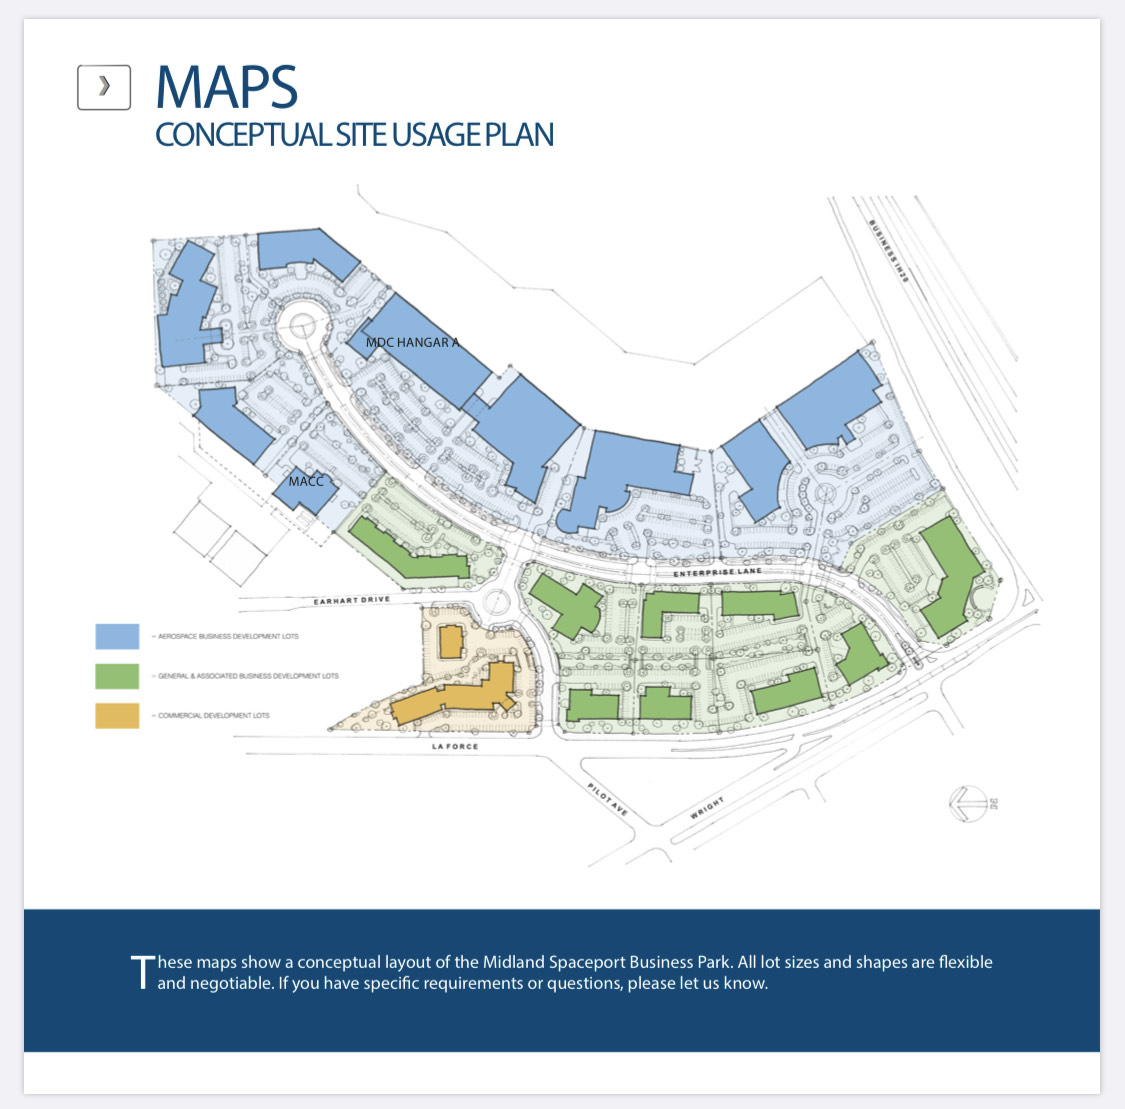 site usage plan map